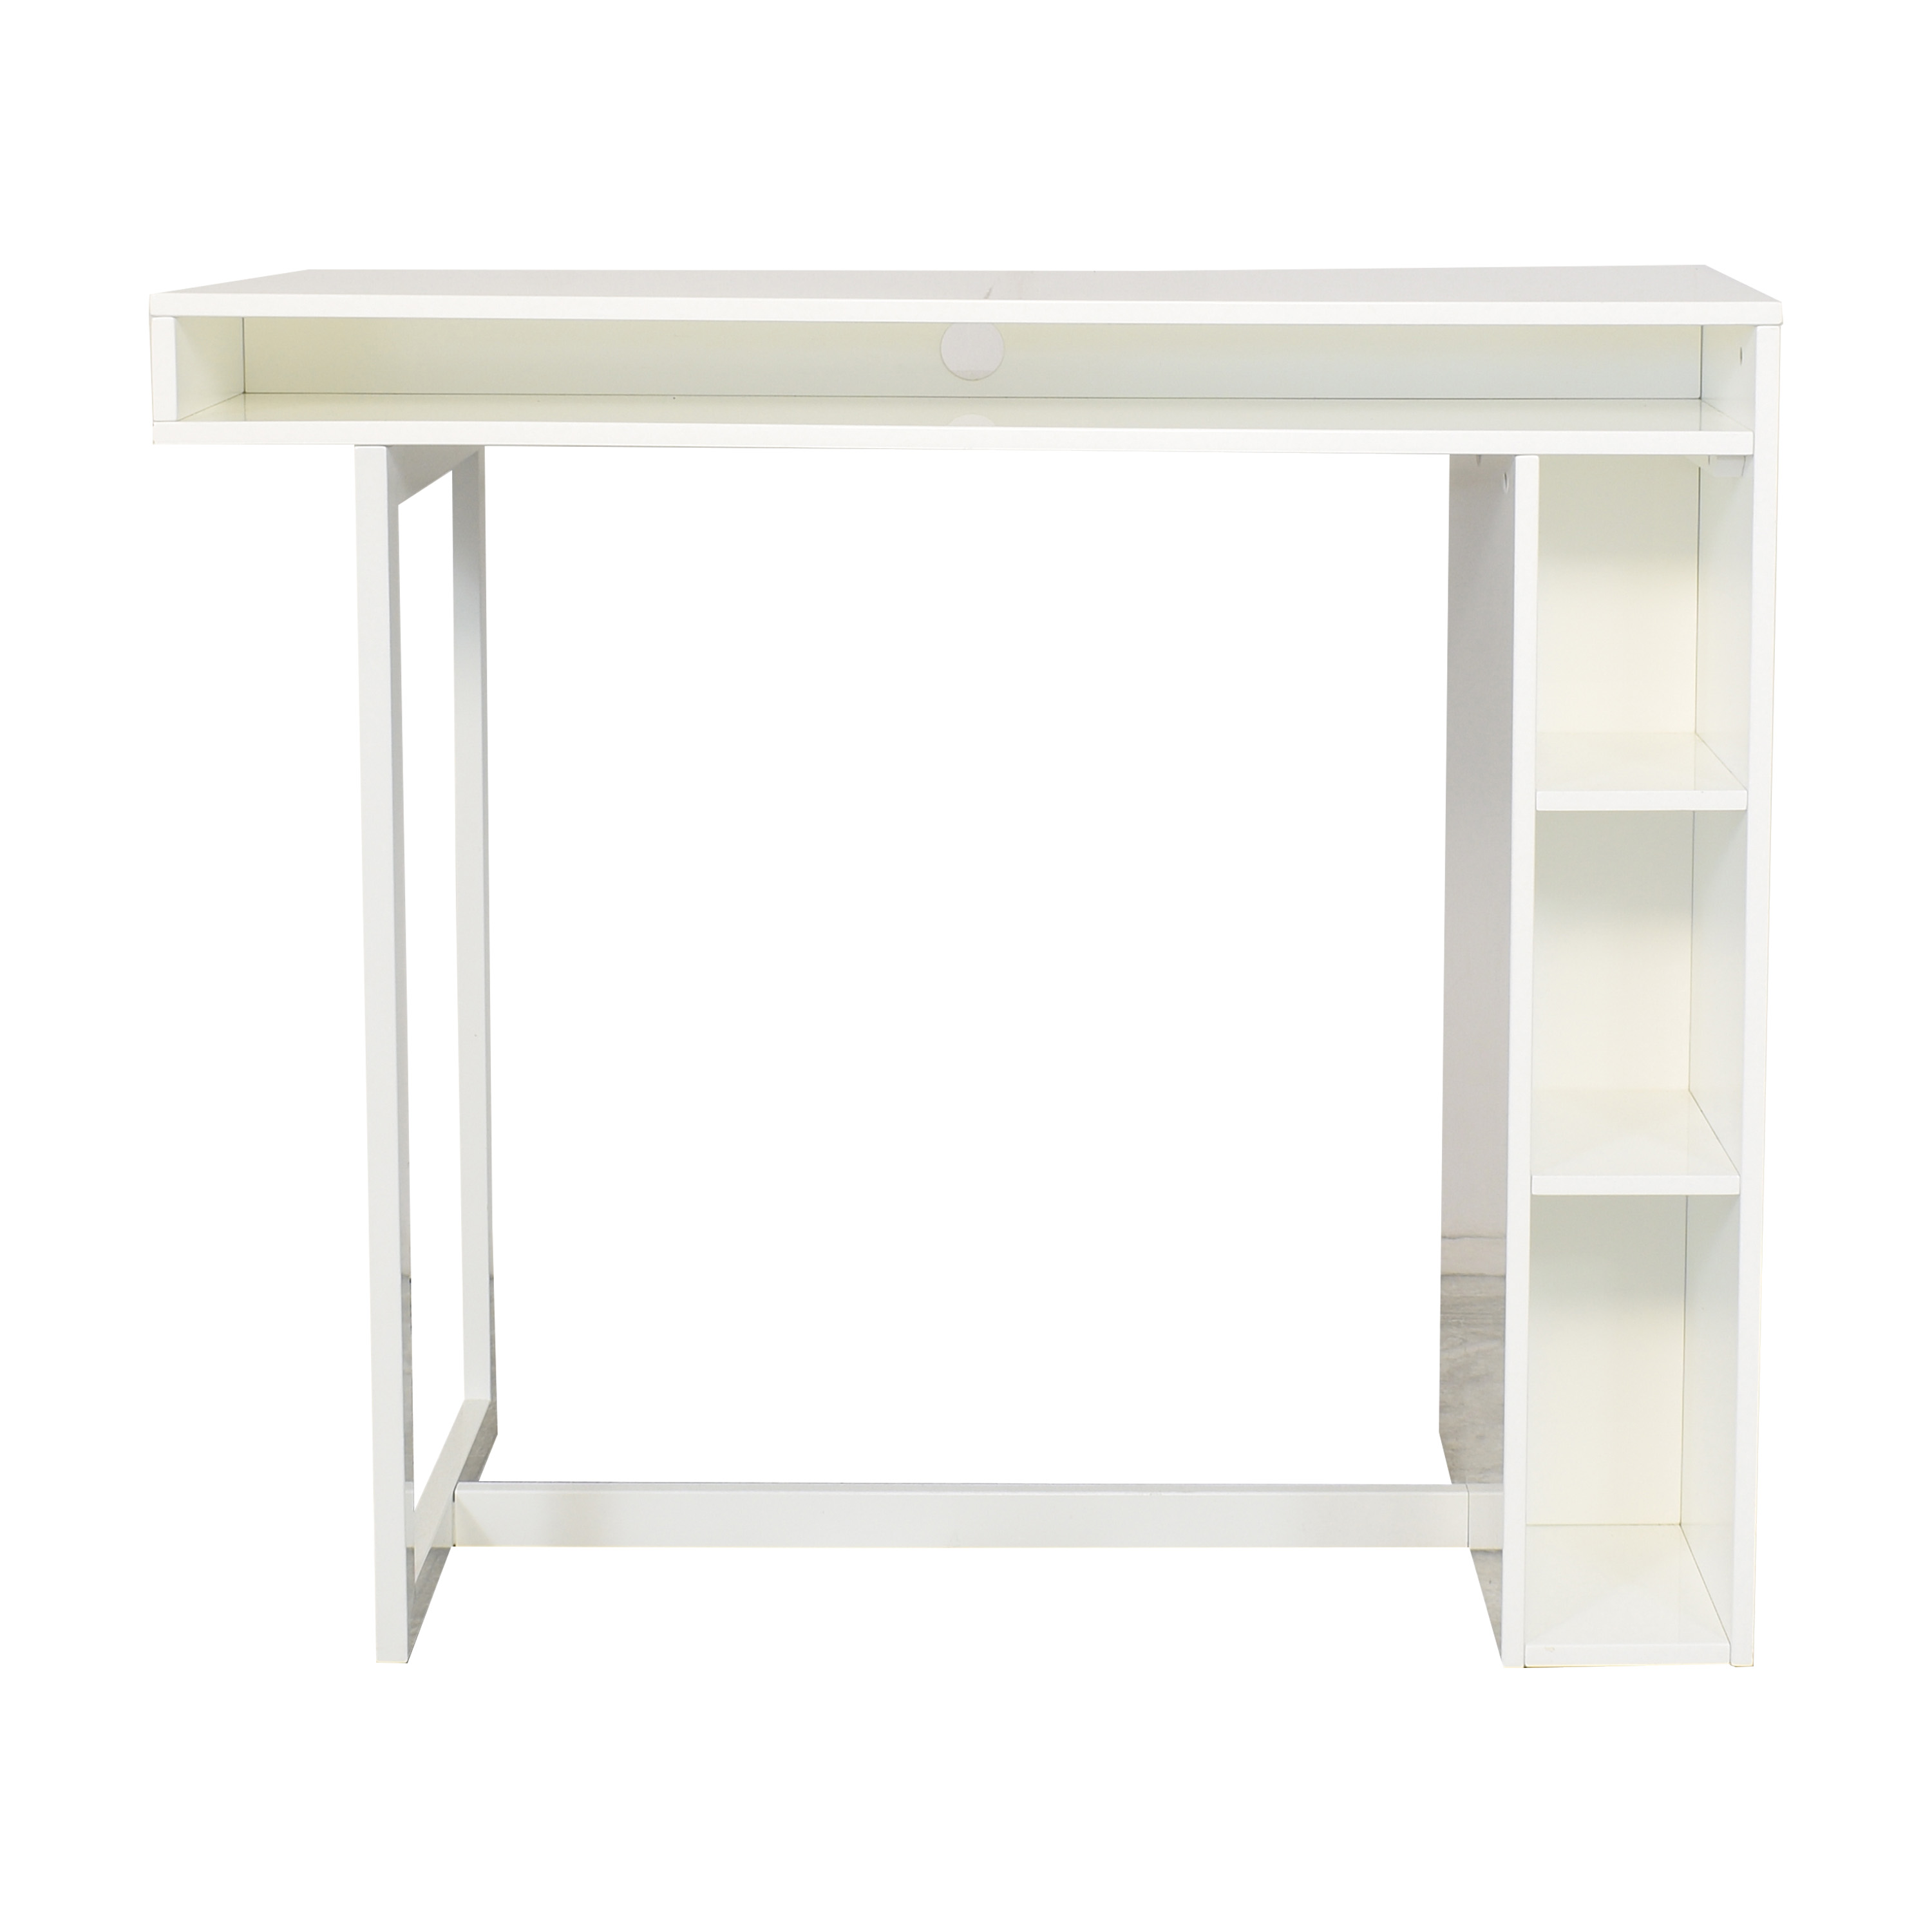 CB2 CB2 Public High Dining Table white